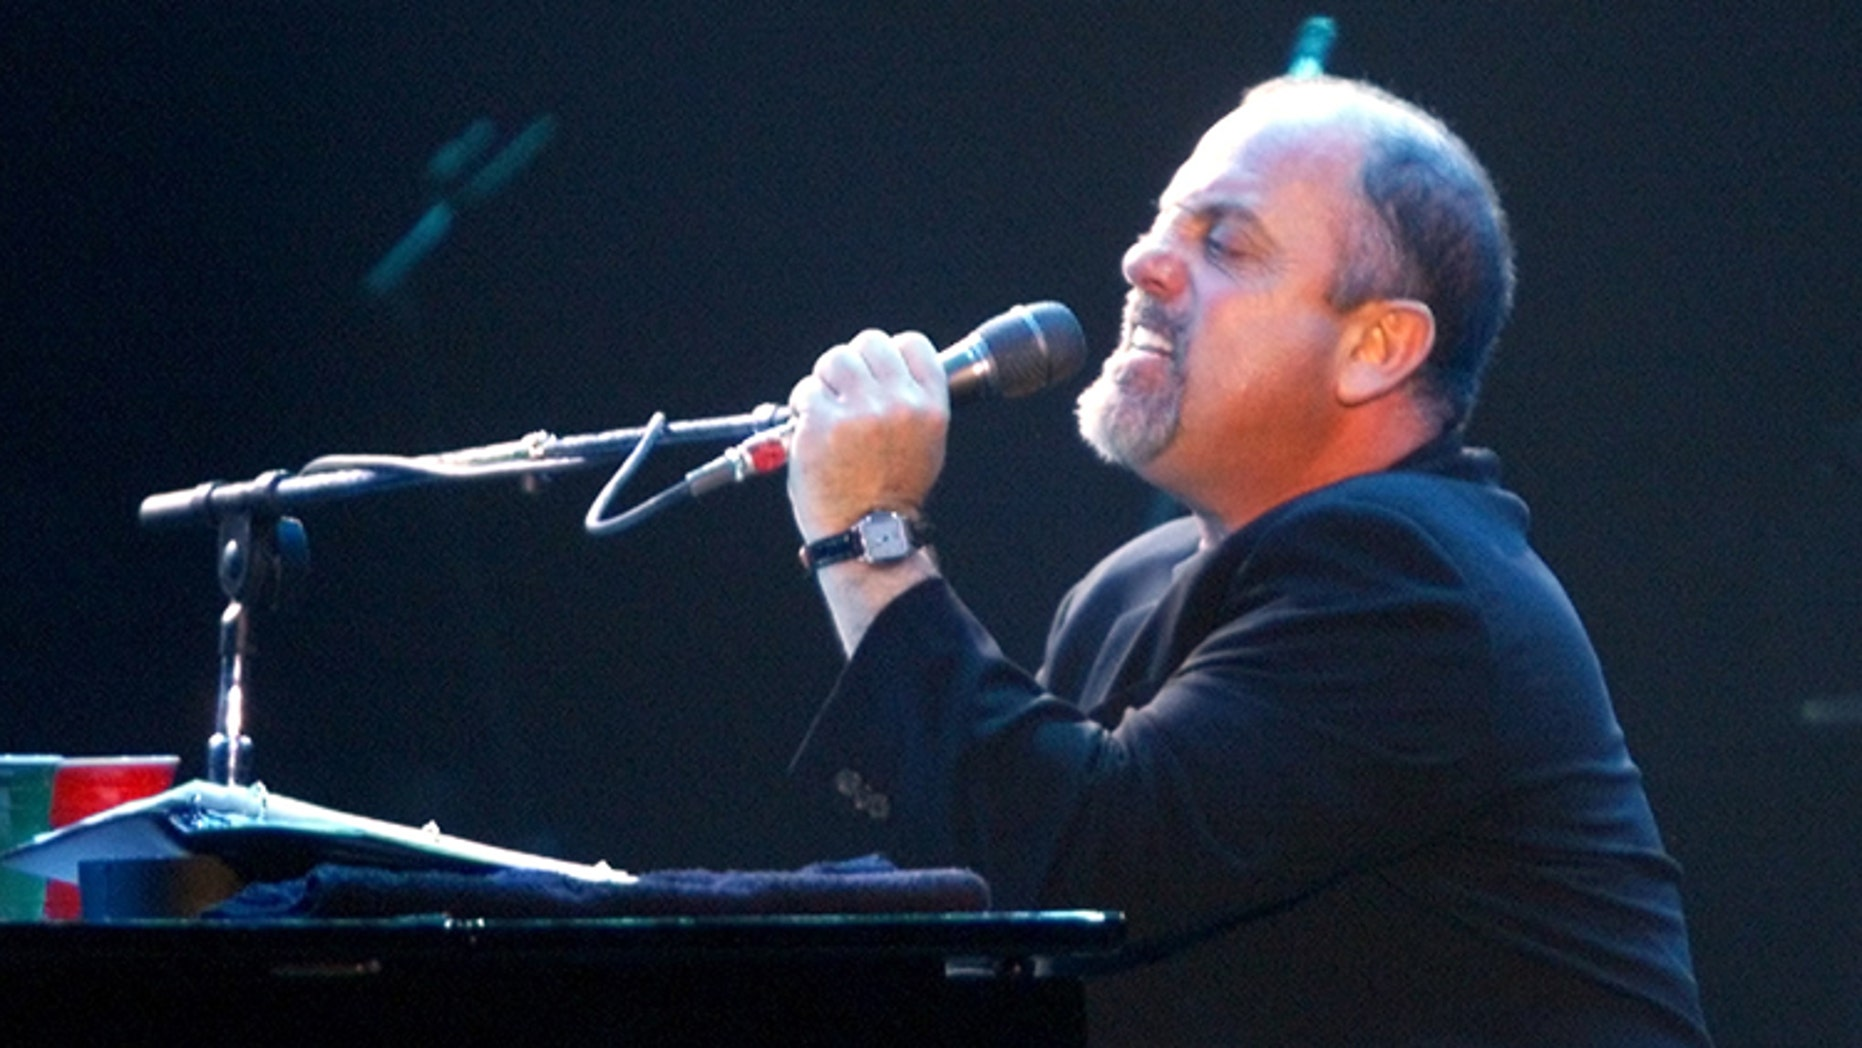 Piano Man' Billy Joel has checked himself into Silver Hill Hospital, asubstance abuse and psychiatric center in Connecticut for a planned10-day stay, his spokeswoman said June 19, 2002. Billy Joel is seenperforming during a concert in Los Angeles, California to benefit theRecording Artists Coalition in this February 26 file photo.REUTERS/Adrees LatifAL/CLH/HK